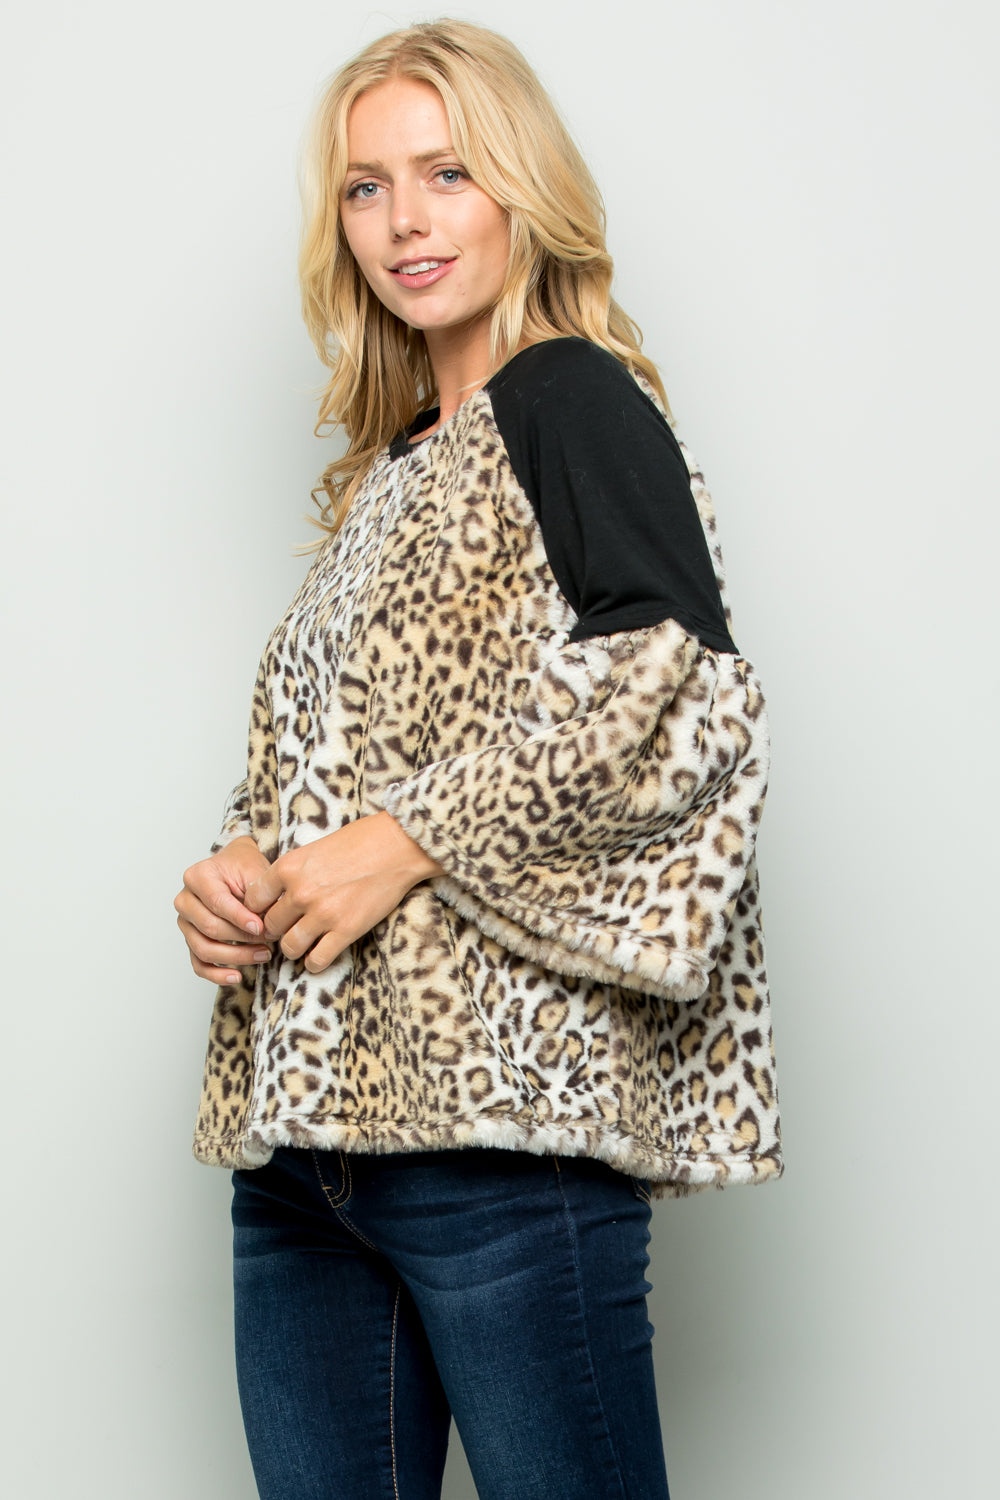 T2714 Animal Printed Faux Fur Terry Top - GREY